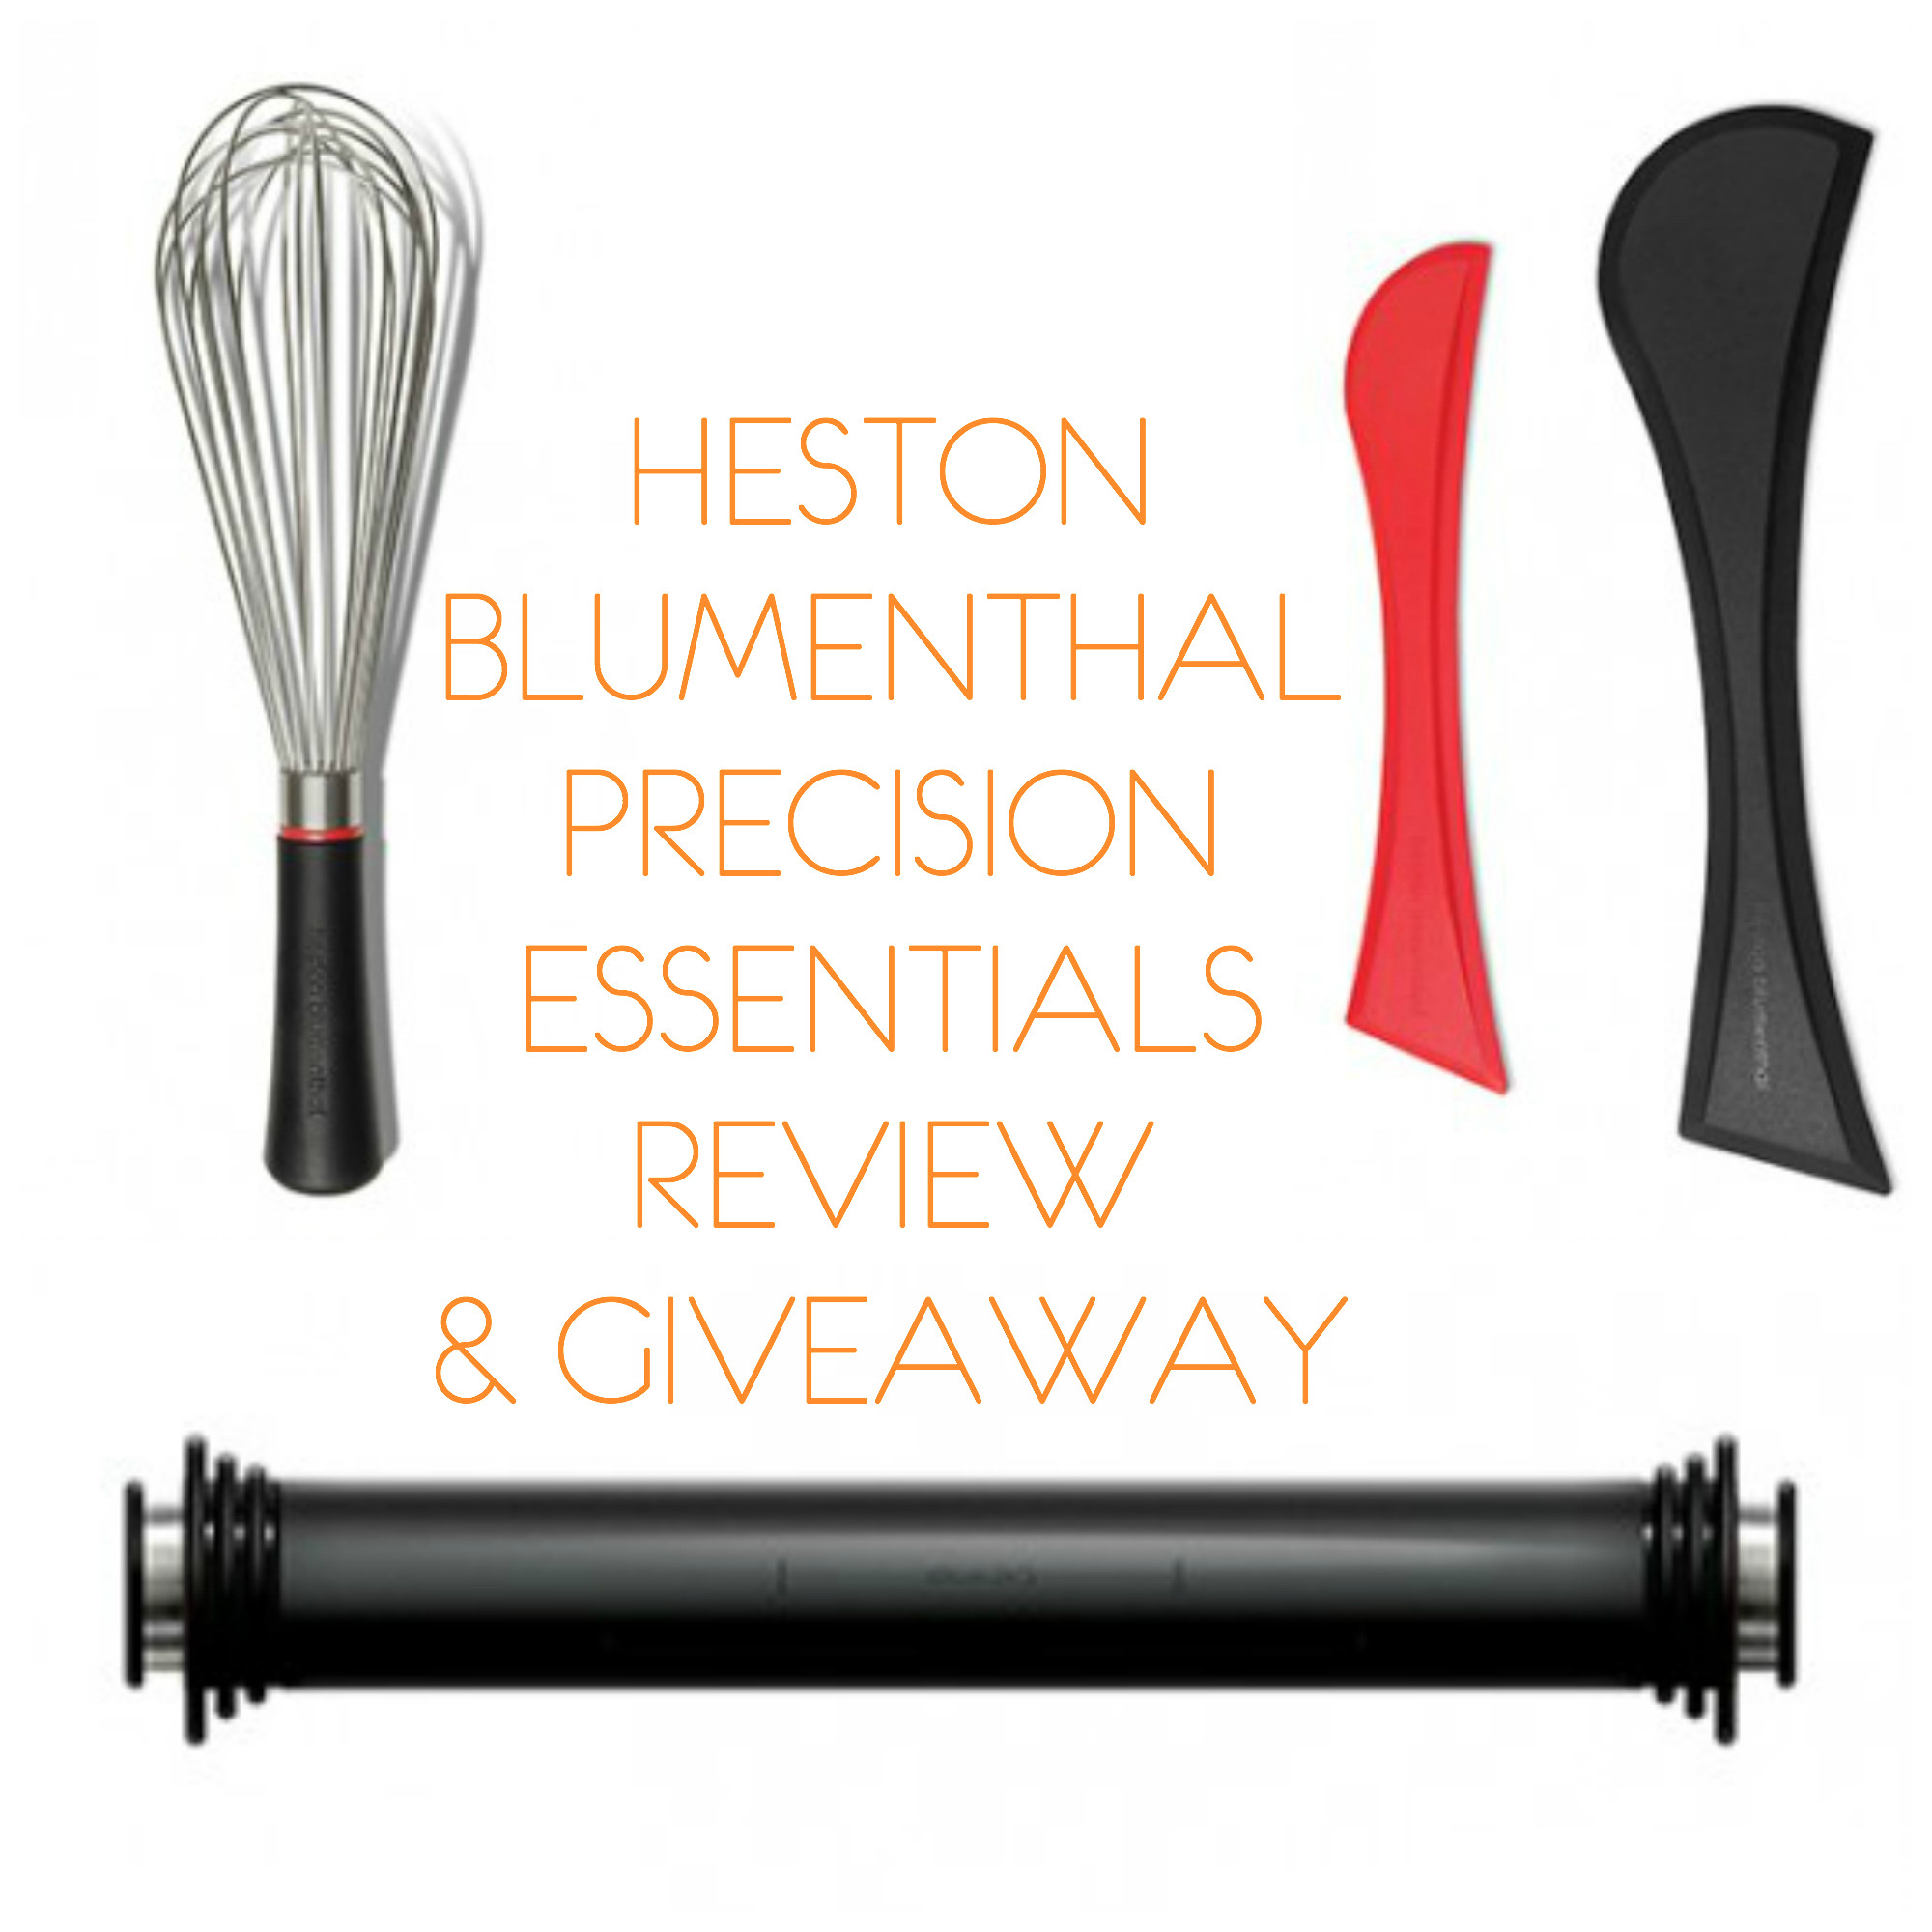 Heston Blumenthal Precision Essentials Review & Giveaway